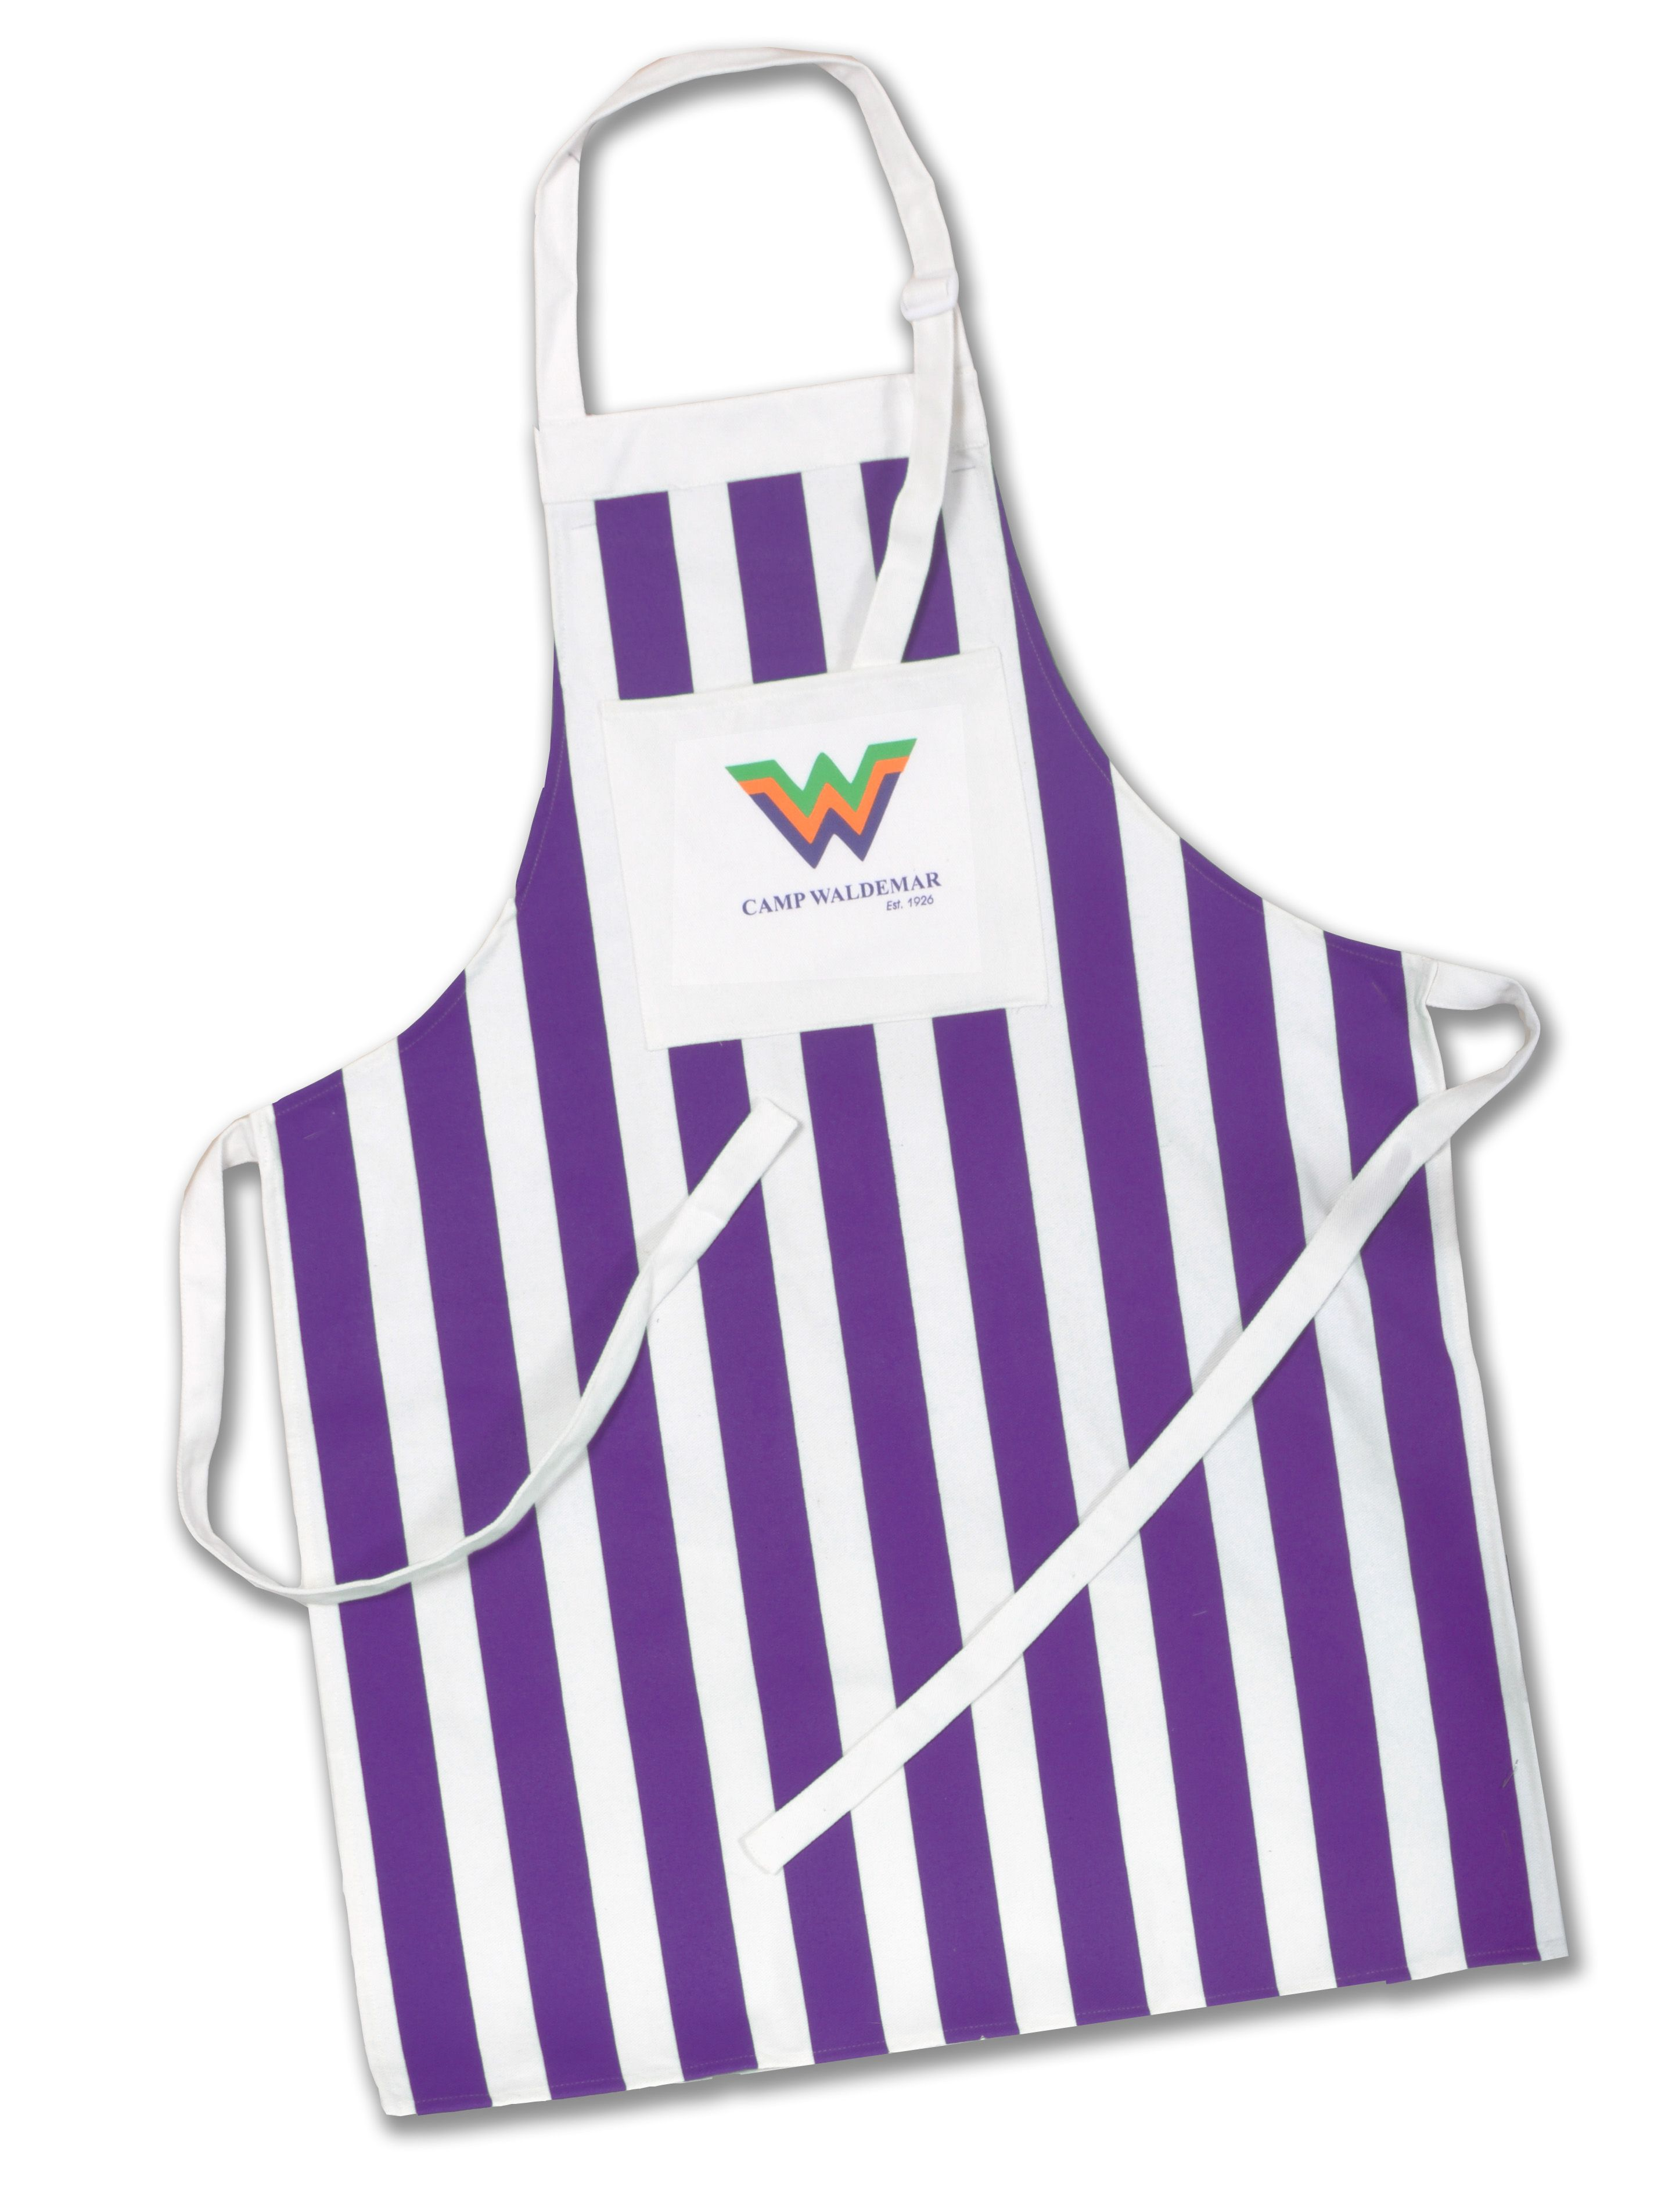 d6ba72e495203 Camp Waldemar Striped Apron in Tejas Purple! Order online from Camp  Waldemar s Camp Store. If you are interested in this as a custom item for  your camp